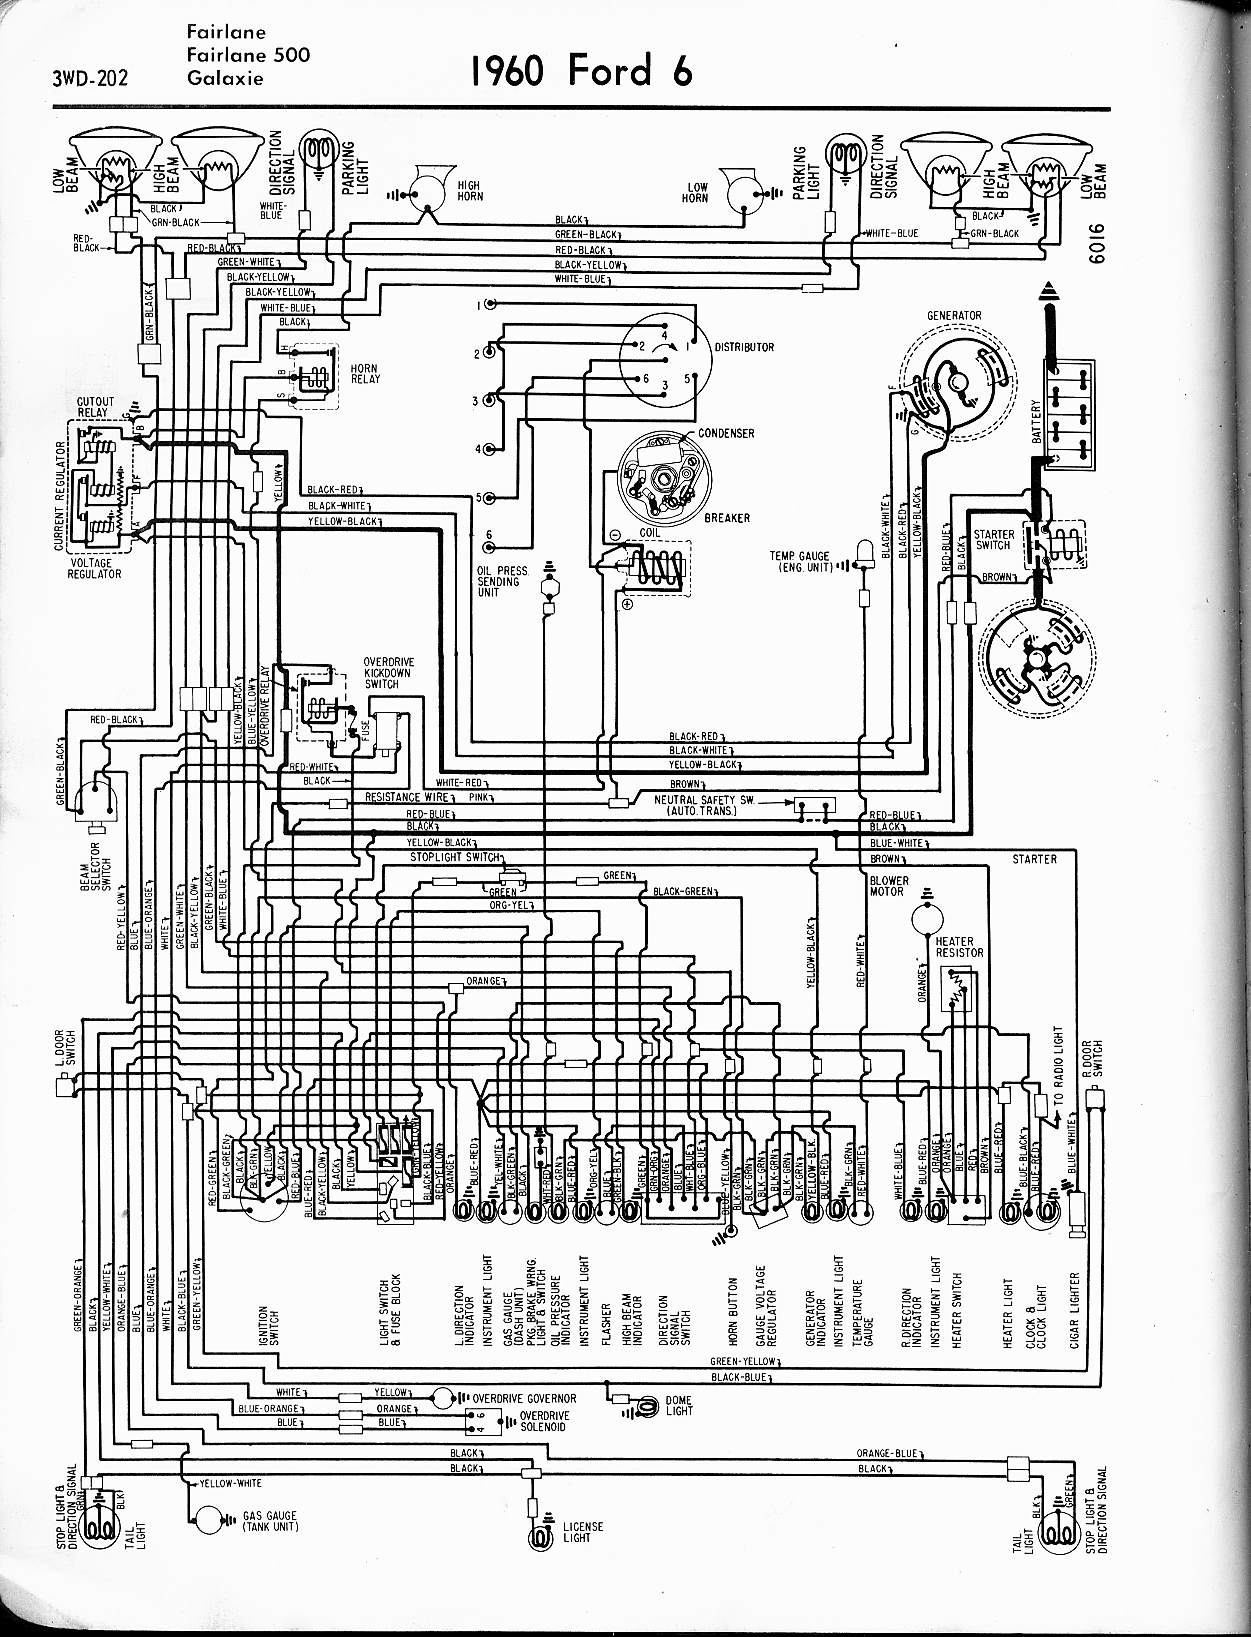 1959 ford wiring diagram wiring diagram Classic F100 1969 thunderbird wiring diagram wiring schematic diagram57 65 ford wiring diagrams 1957 thunderbird wiring diagram 1960